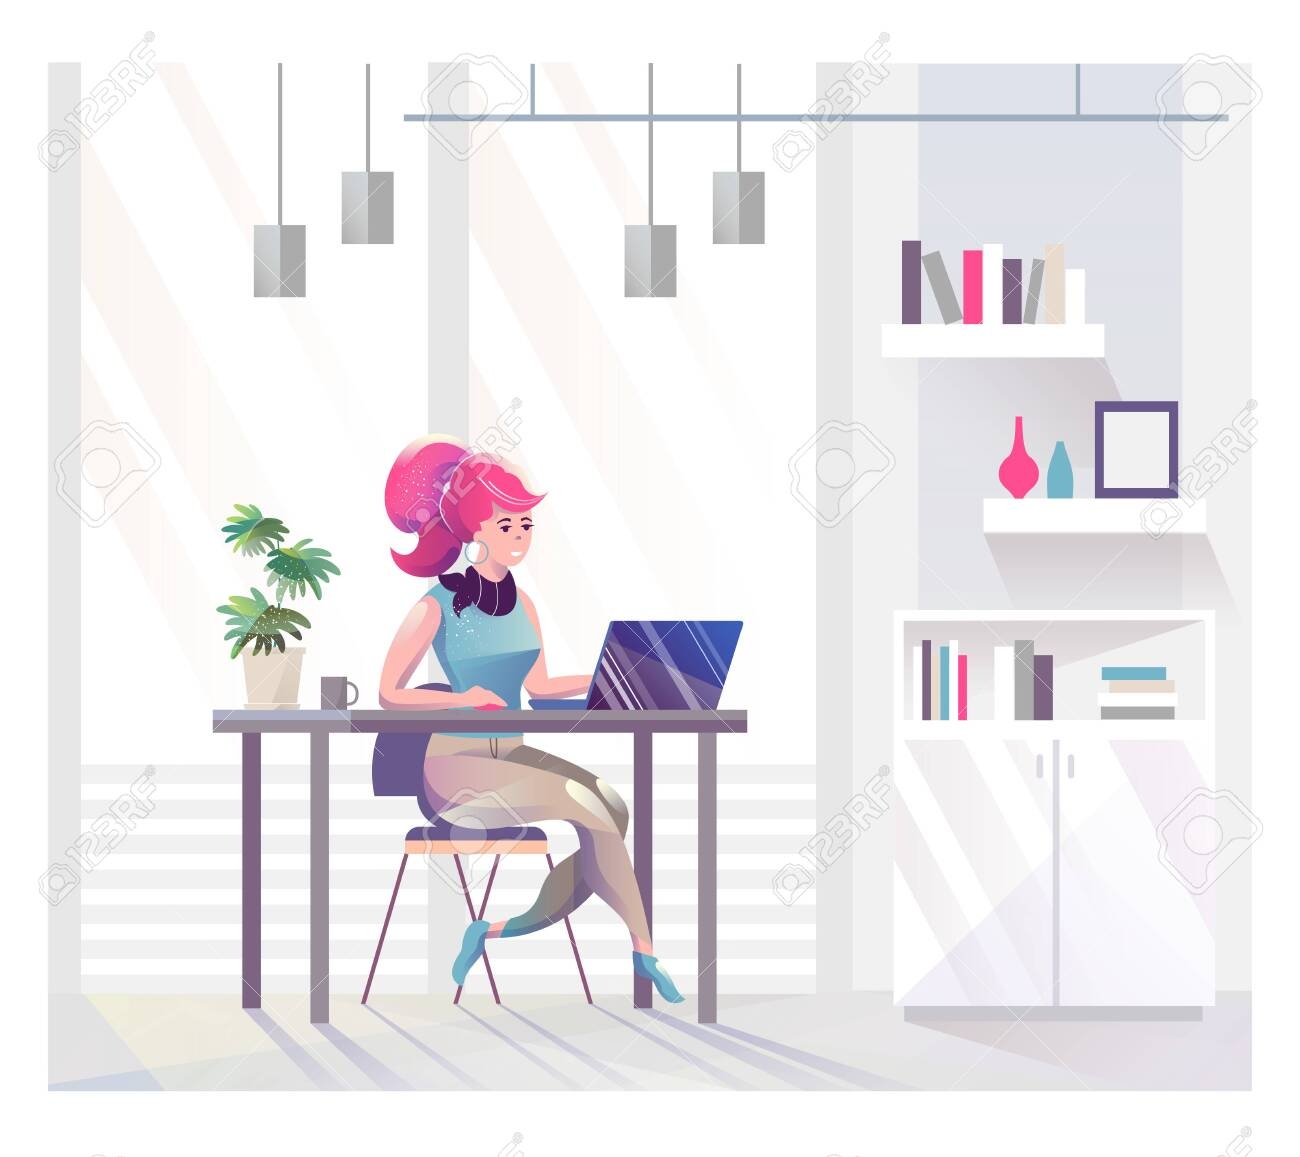 Concept in flat style with woman. Businesswoman works in office. Creative atmosphere. Vector illustration. - 136053380